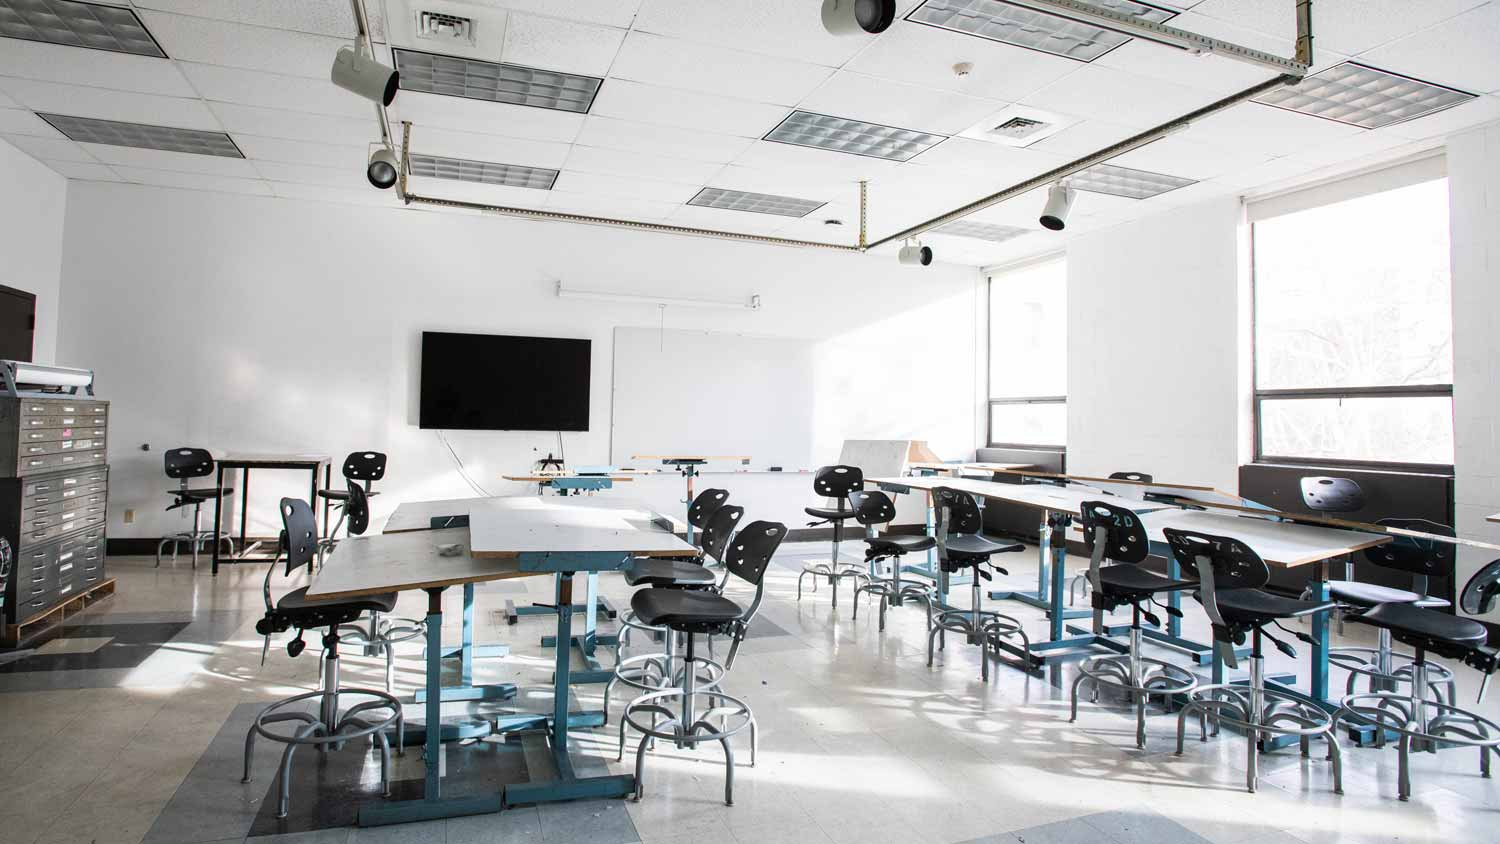 White lab room with 2 rows of desks with chairs